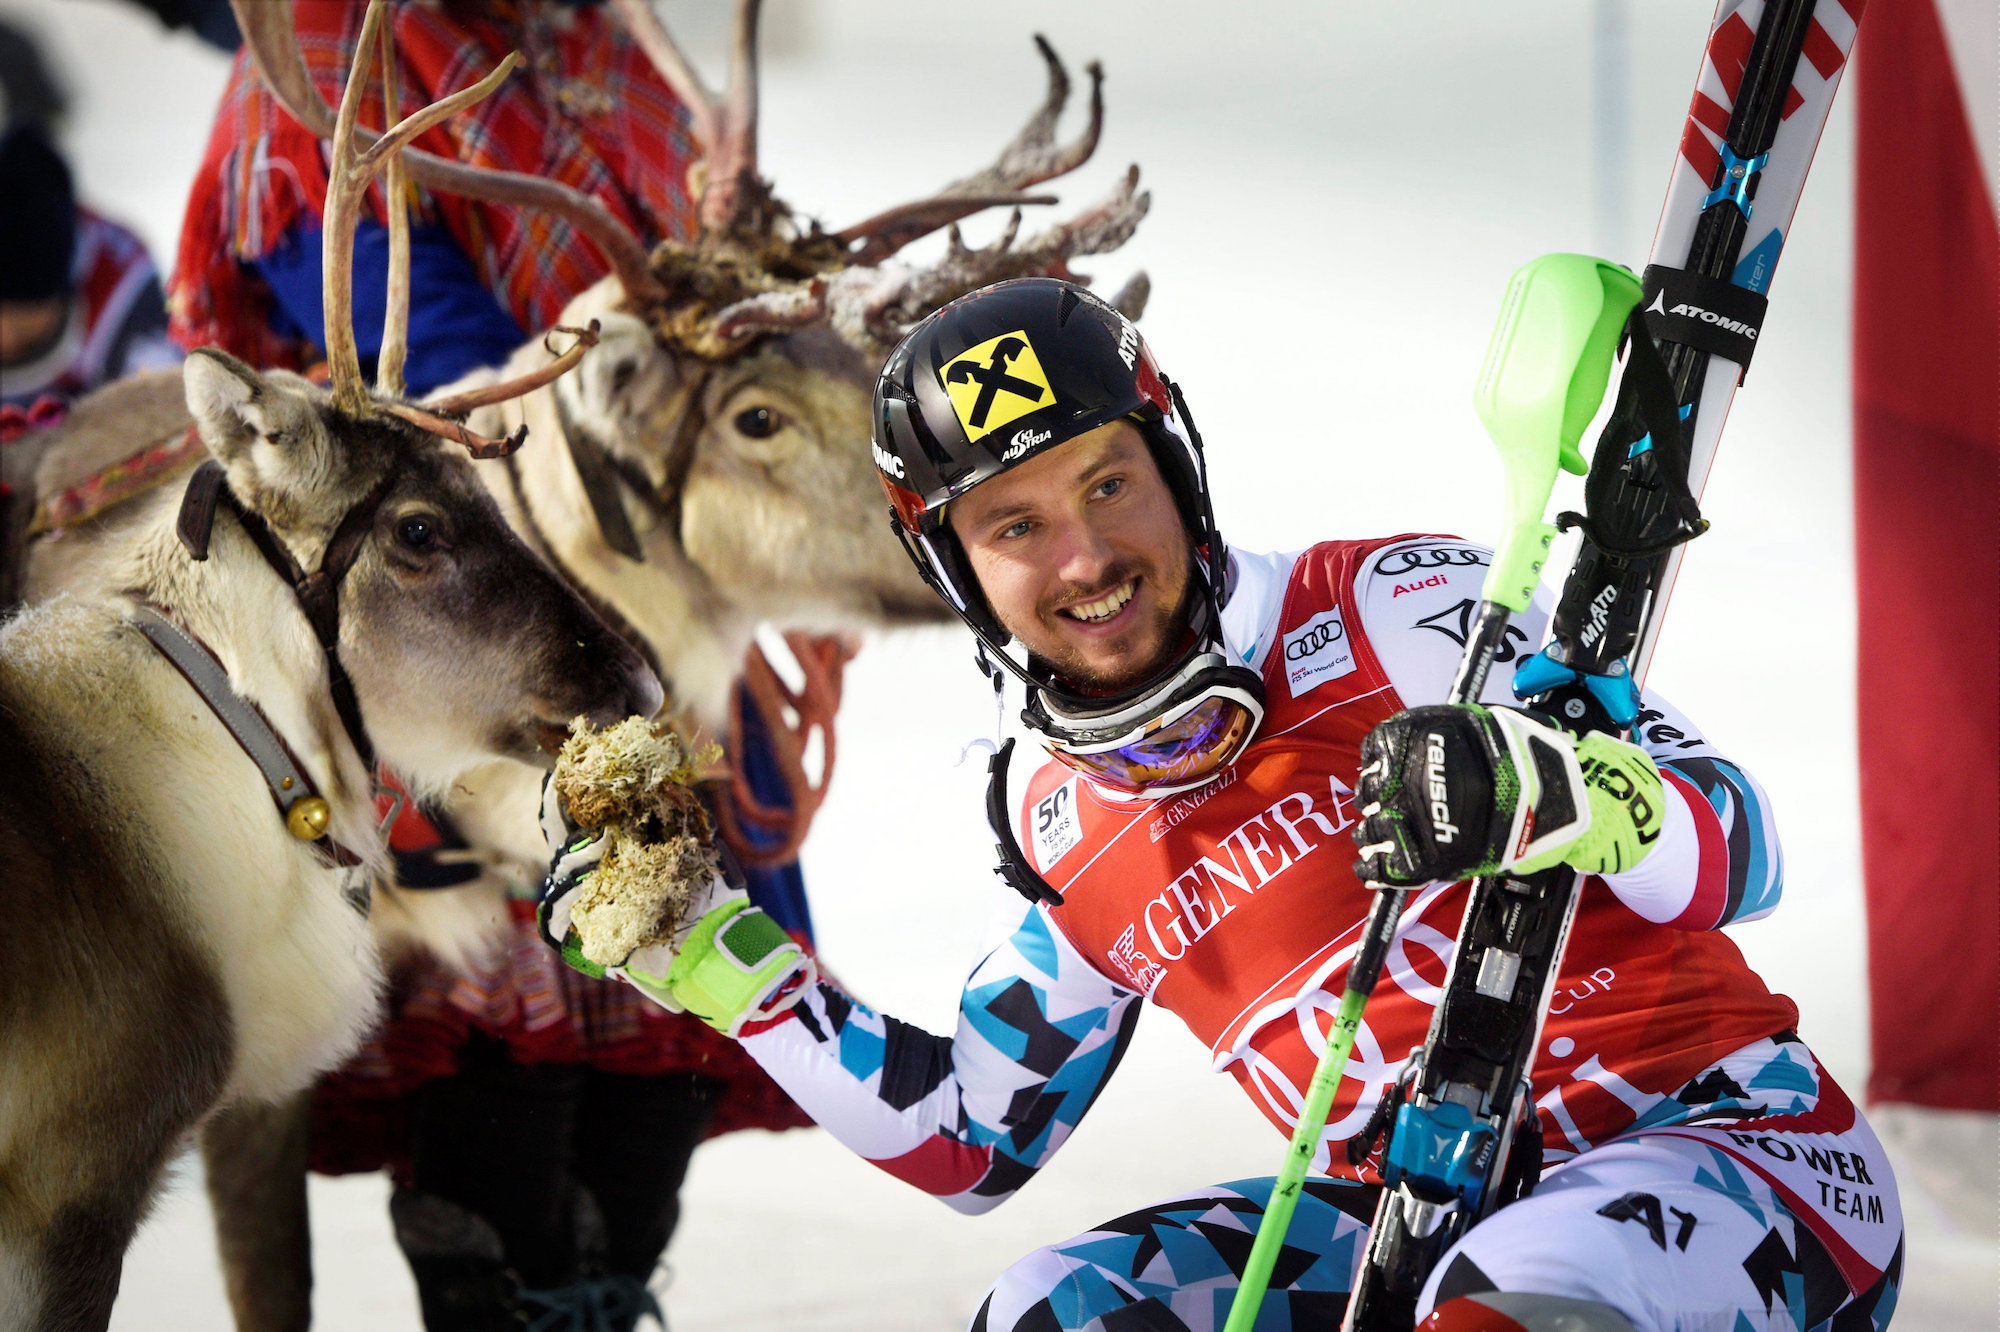 FIS World Cup alpine skiing - Men's slalom - Kittila Finland - 13/11/2016. Winner Marcel Hirscher of Austria poses with his trophy, a reindeer which Hirscher named Leo, after the Men's FIS Alpine Skiing World Cup slalom race LEHTIKUVA/Martti Kainulainen via REUTERS ATTENTION EDITORS - THIS IMAGE WAS PROVIDED BY A THIRD PARTY. FOR EDITORIAL USE ONLY. NOT FOR SALE FOR MARKETING OR ADVERTISING CAMPAIGNS. NO THIRD PARTY SALES. NOT FOR USE BY REUTERS THIRD PARTY DISTRIBUTORS. FINLAND OUT. NO COMMERCIAL OR EDITORIAL SALES IN FINLAND.